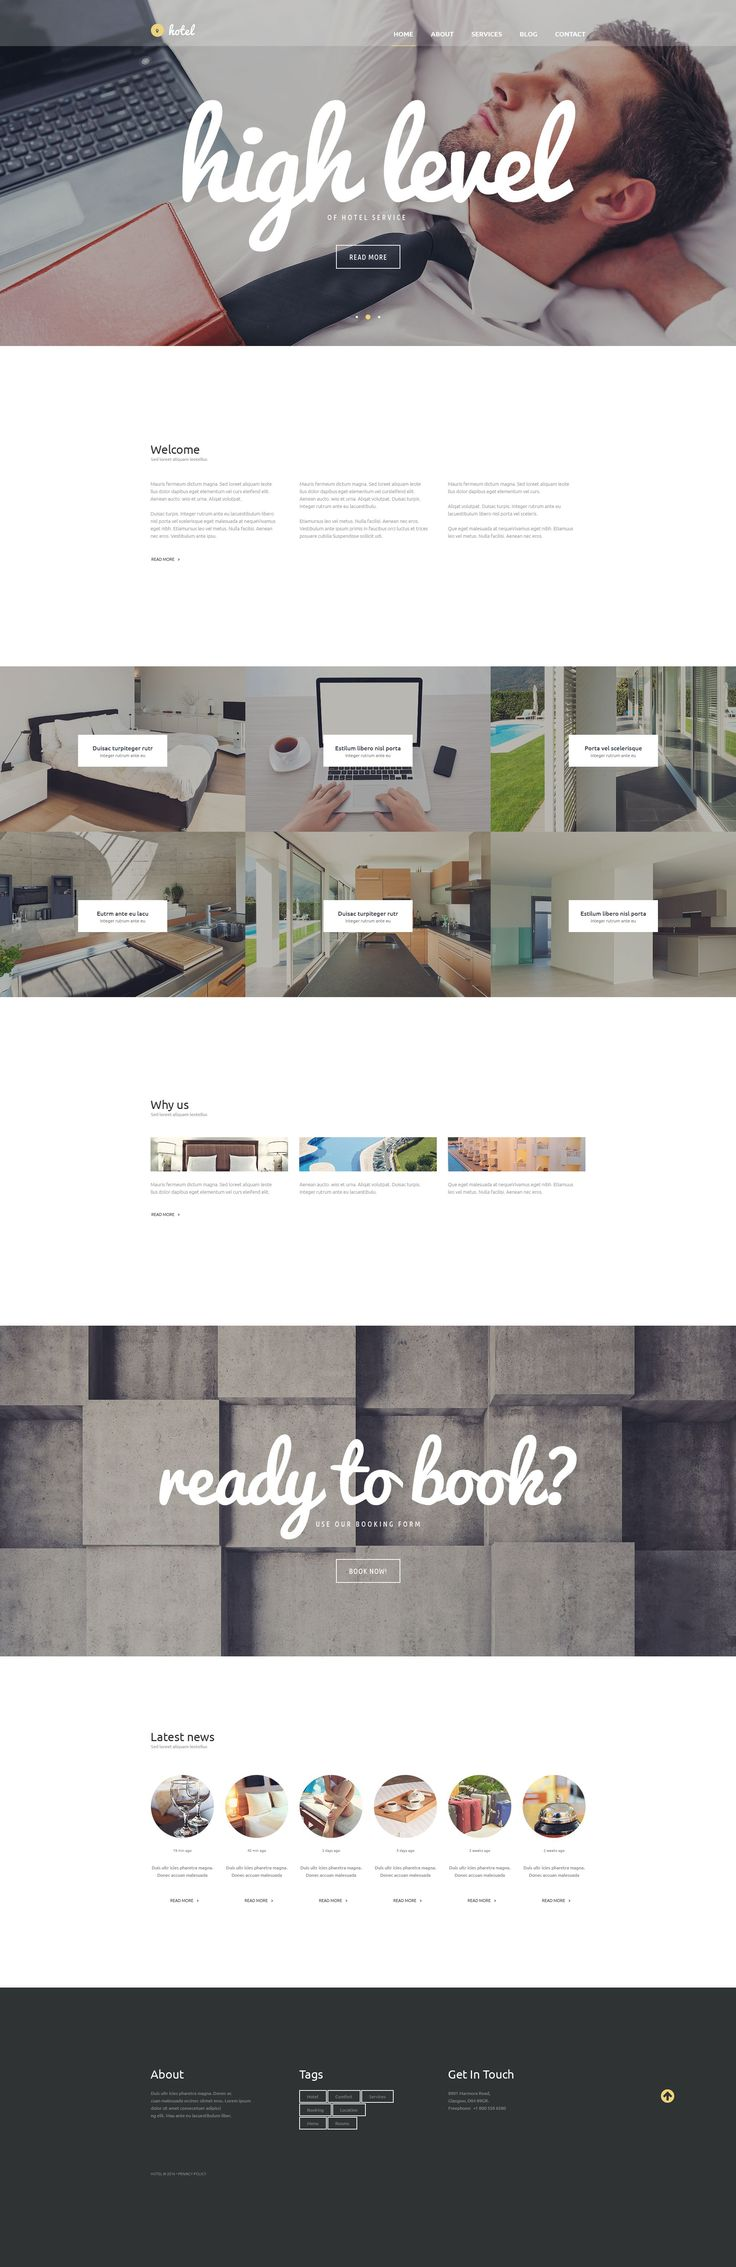 91 best Hotel Website Templates images on Pinterest | Design ...